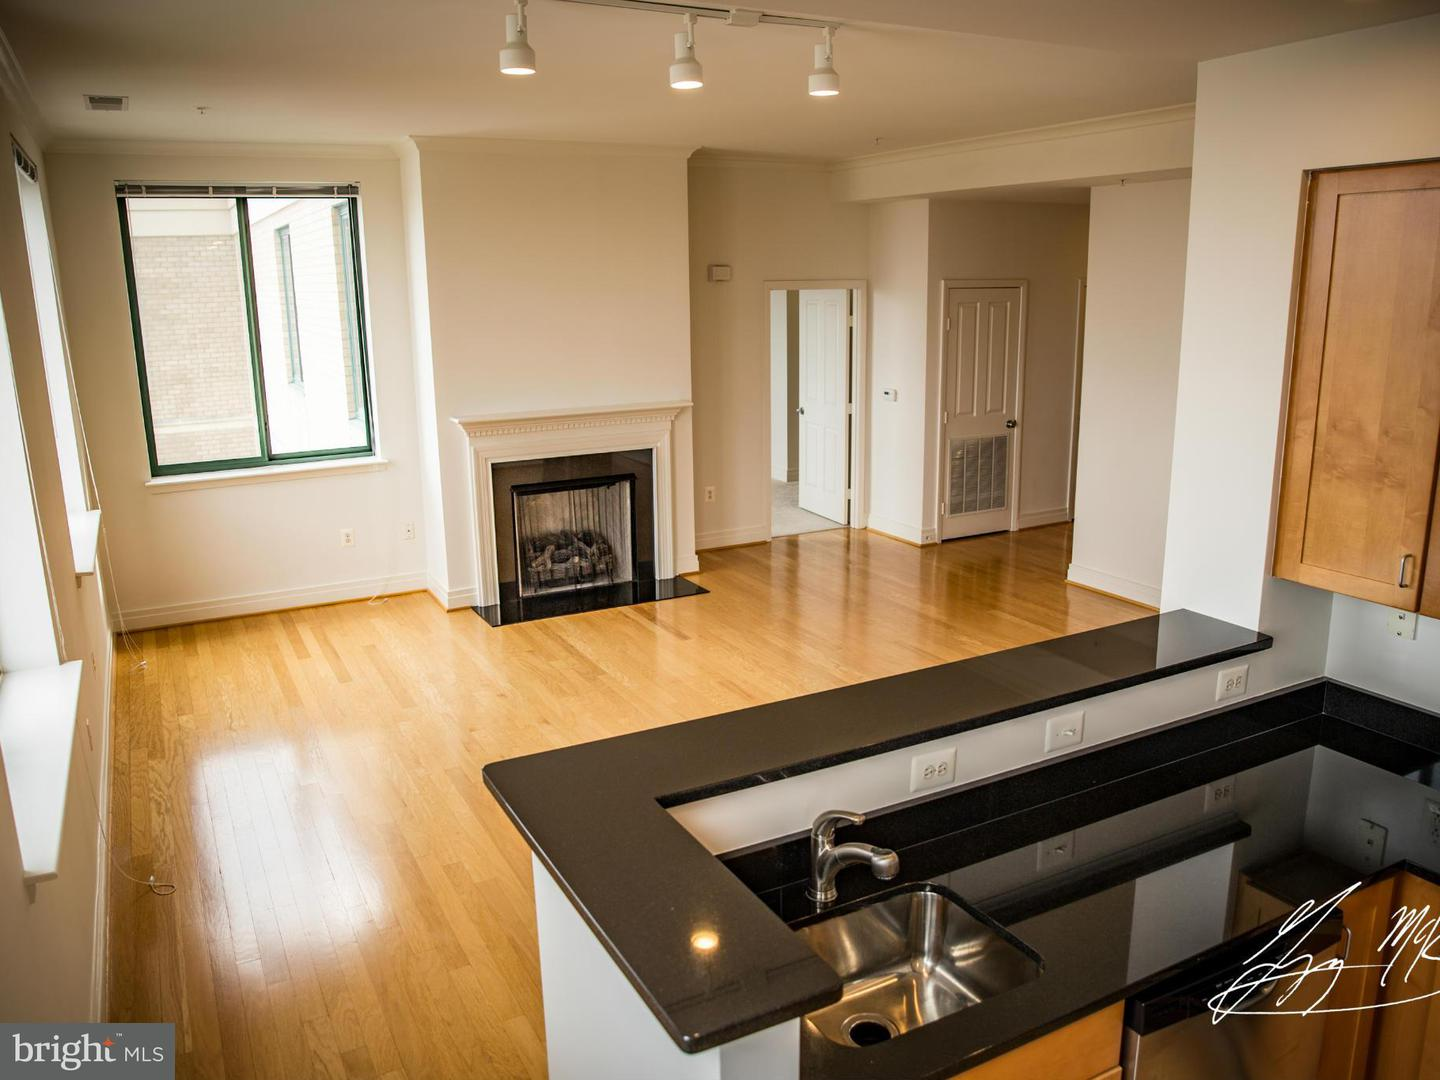 Other Residential for Rent at 414 Water St #3112 Baltimore, Maryland 21202 United States